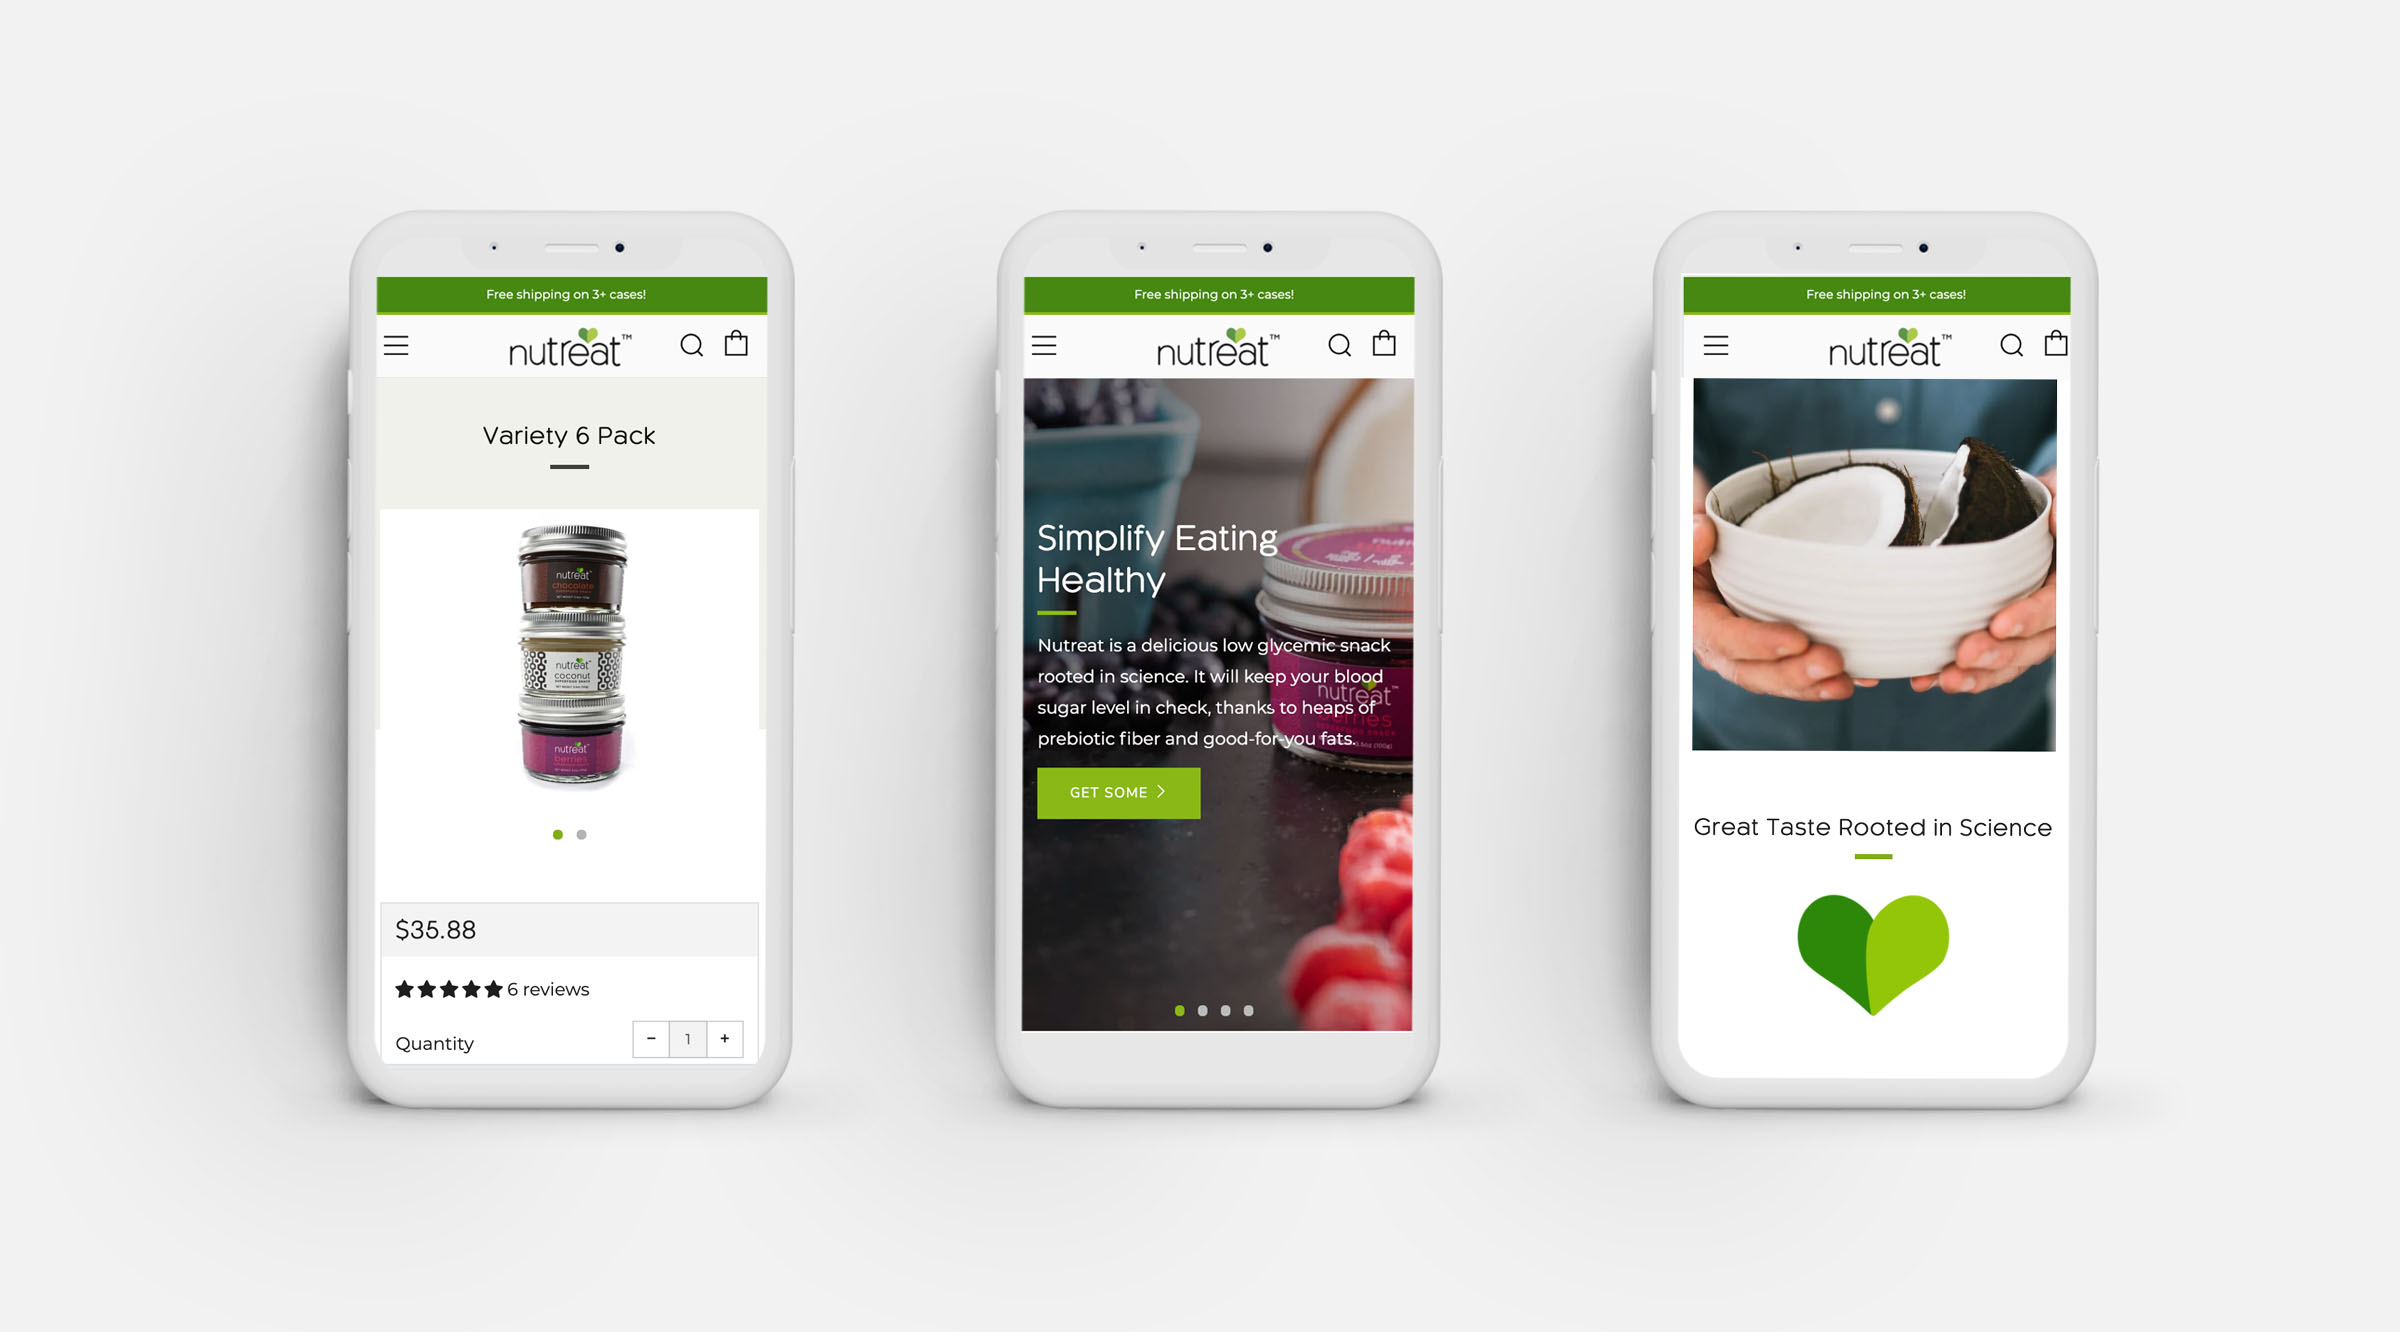 Mobile Shopify website design for nutreat